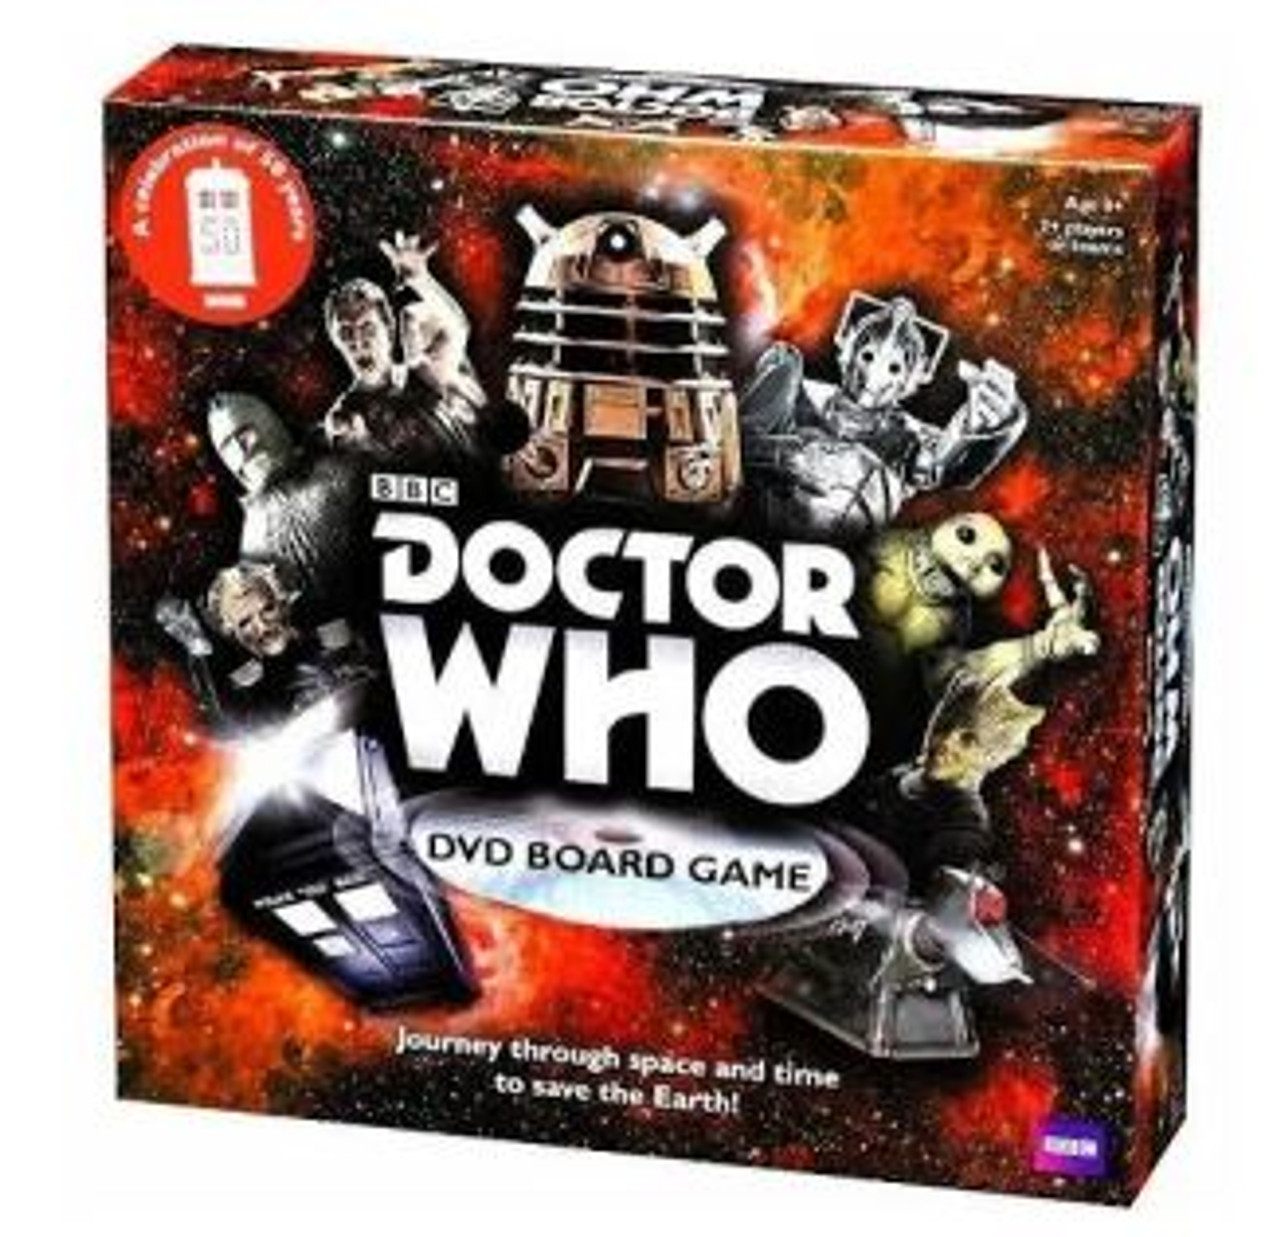 BBC Doctor Who DVD Board Game (50th Anniversary)